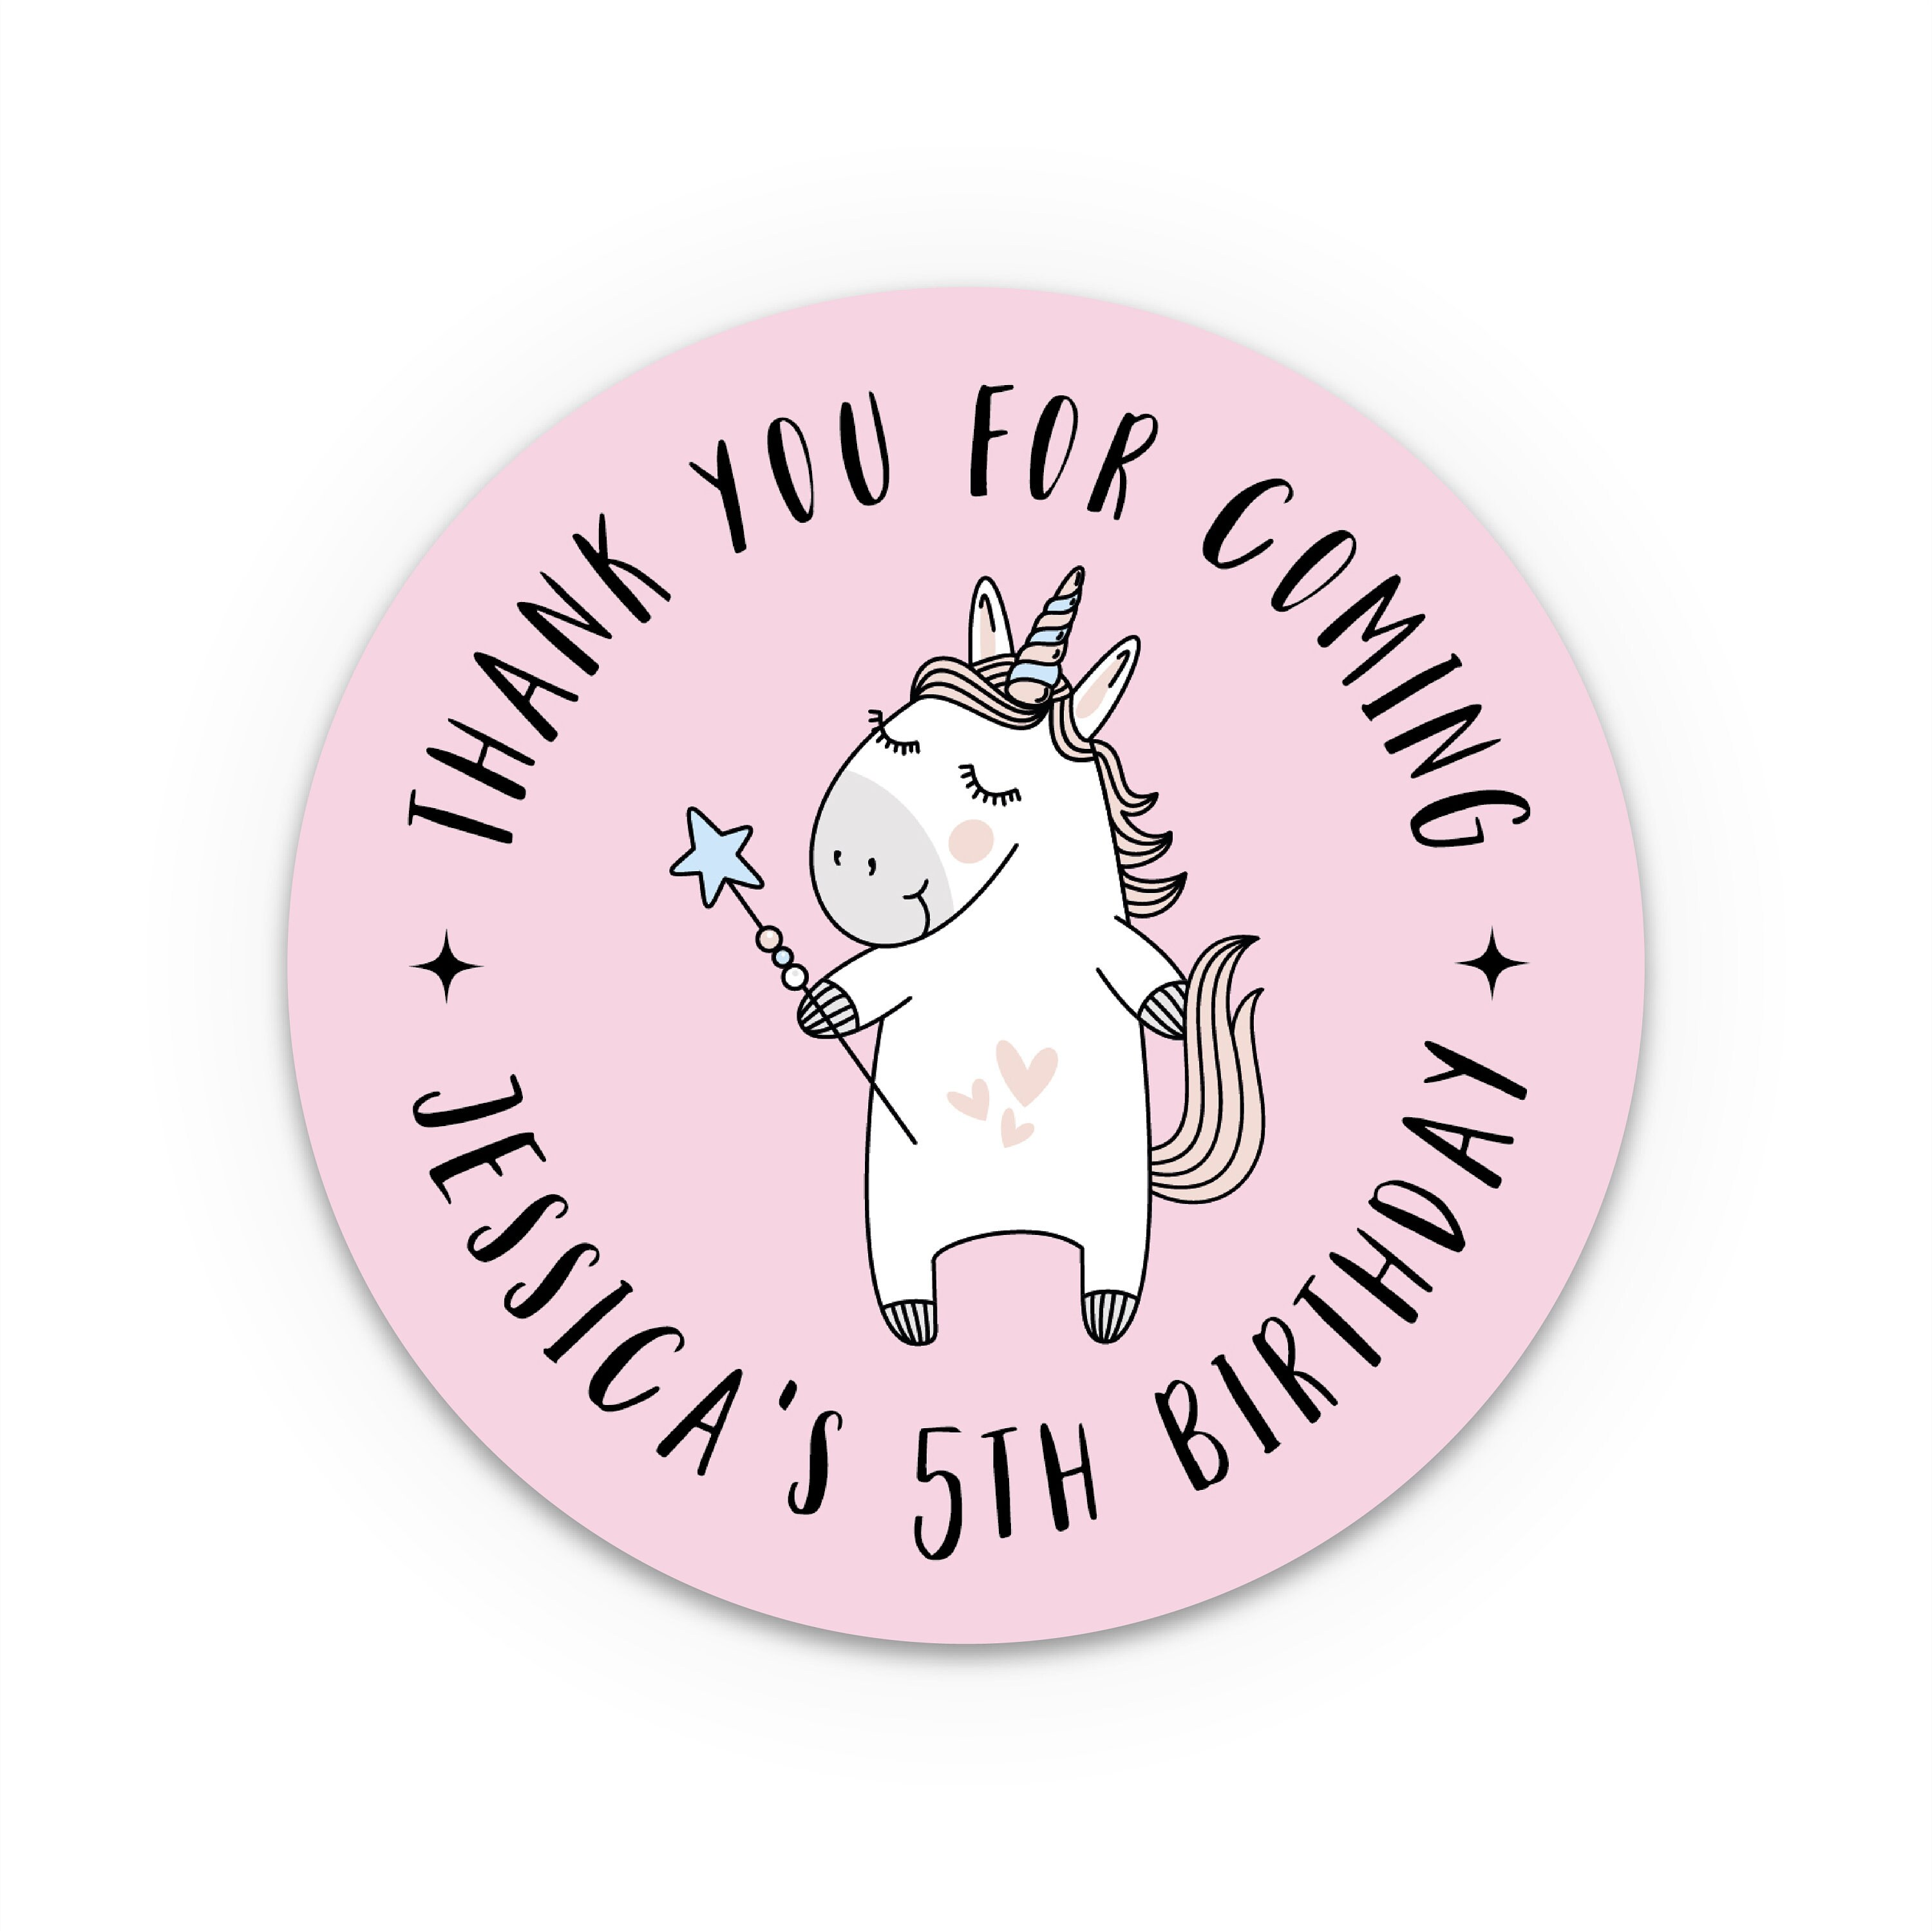 Unicorn birthday stickers party favor sticker personalised round sticker kids birthday sticker custom stickers thank you stickers